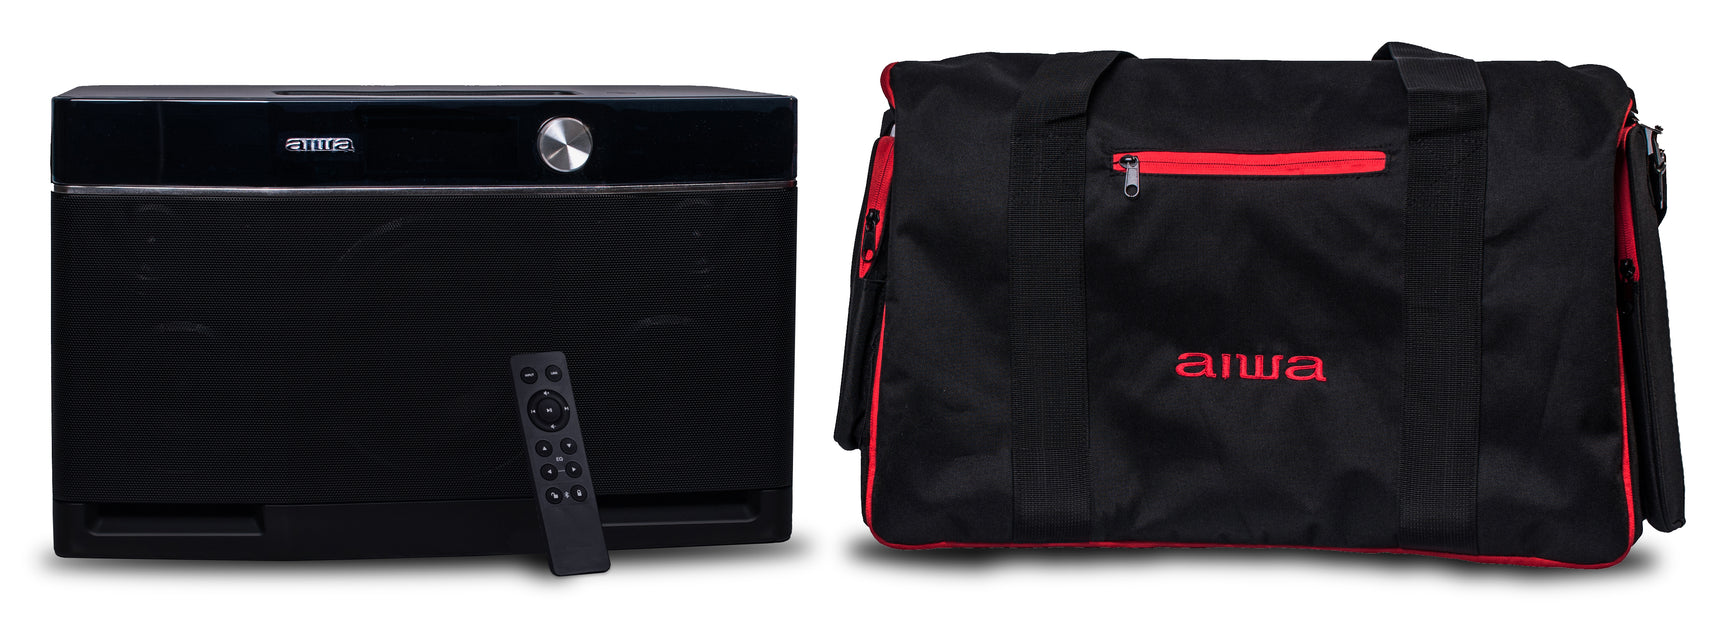 Carrying Case//Travel Bag for Aiwa Exos-9 Portable Bluetooth Speaker